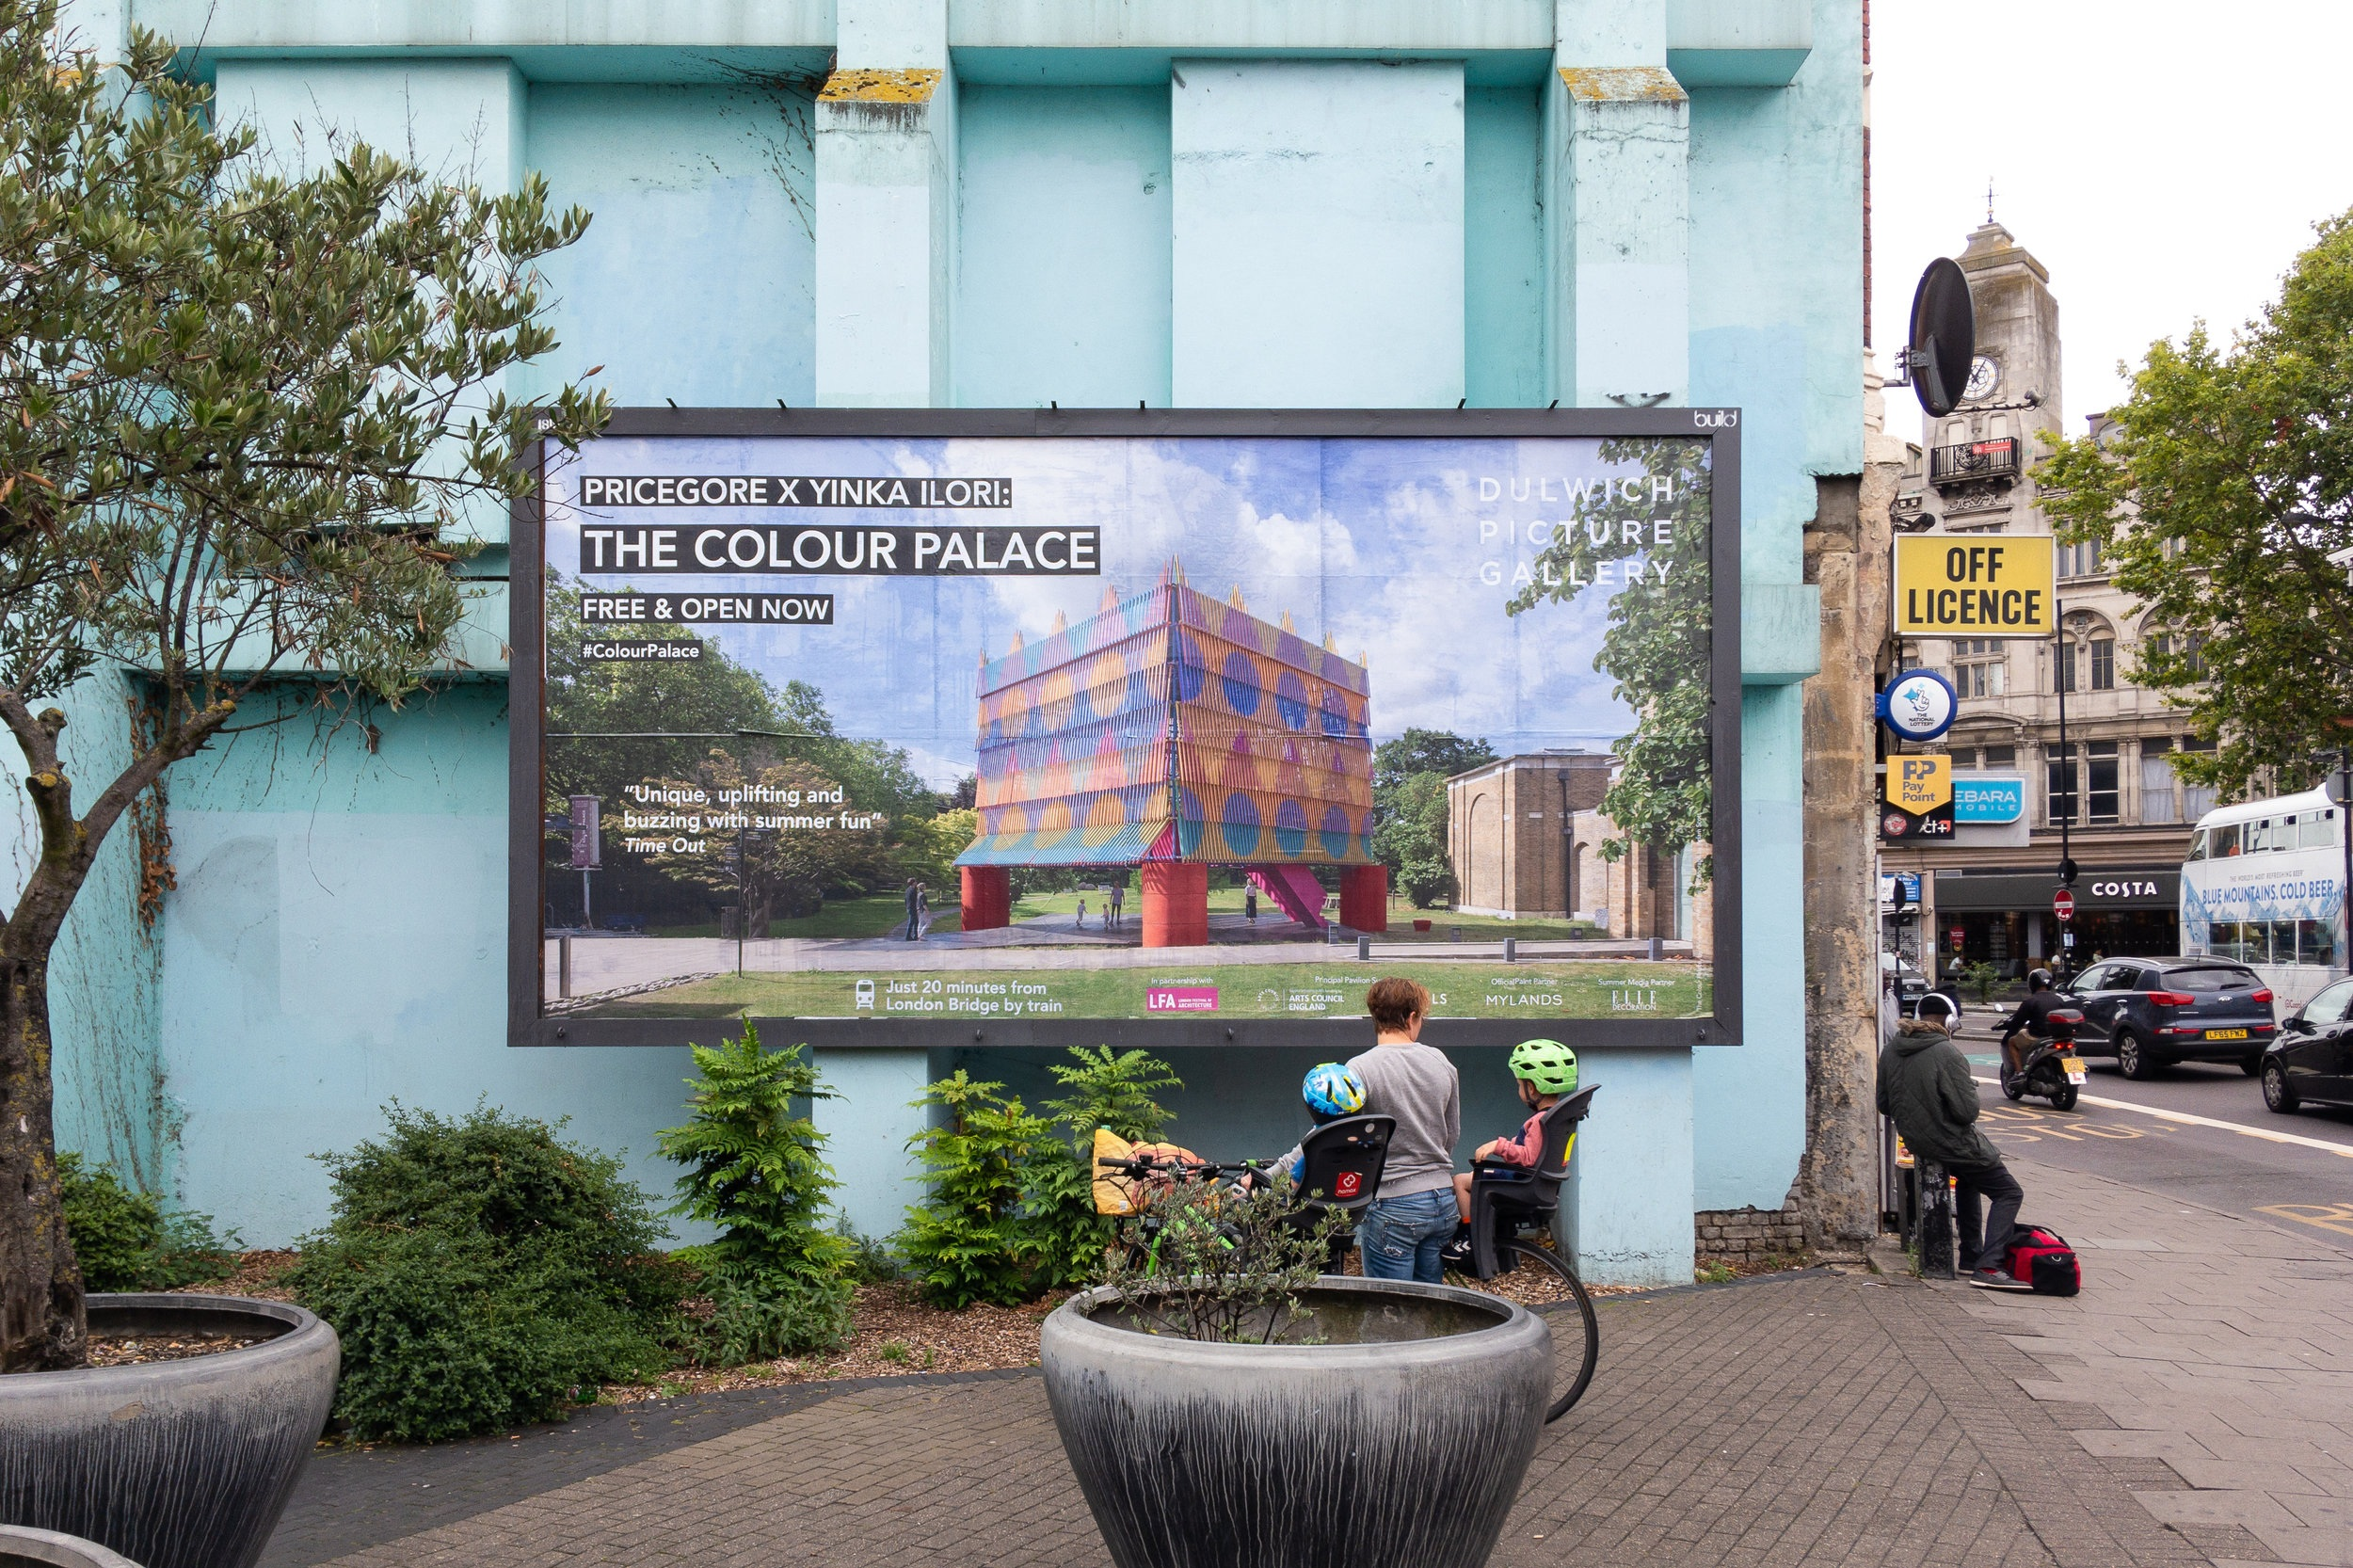 ColourPalaceBillboard_Peckham_01.jpg